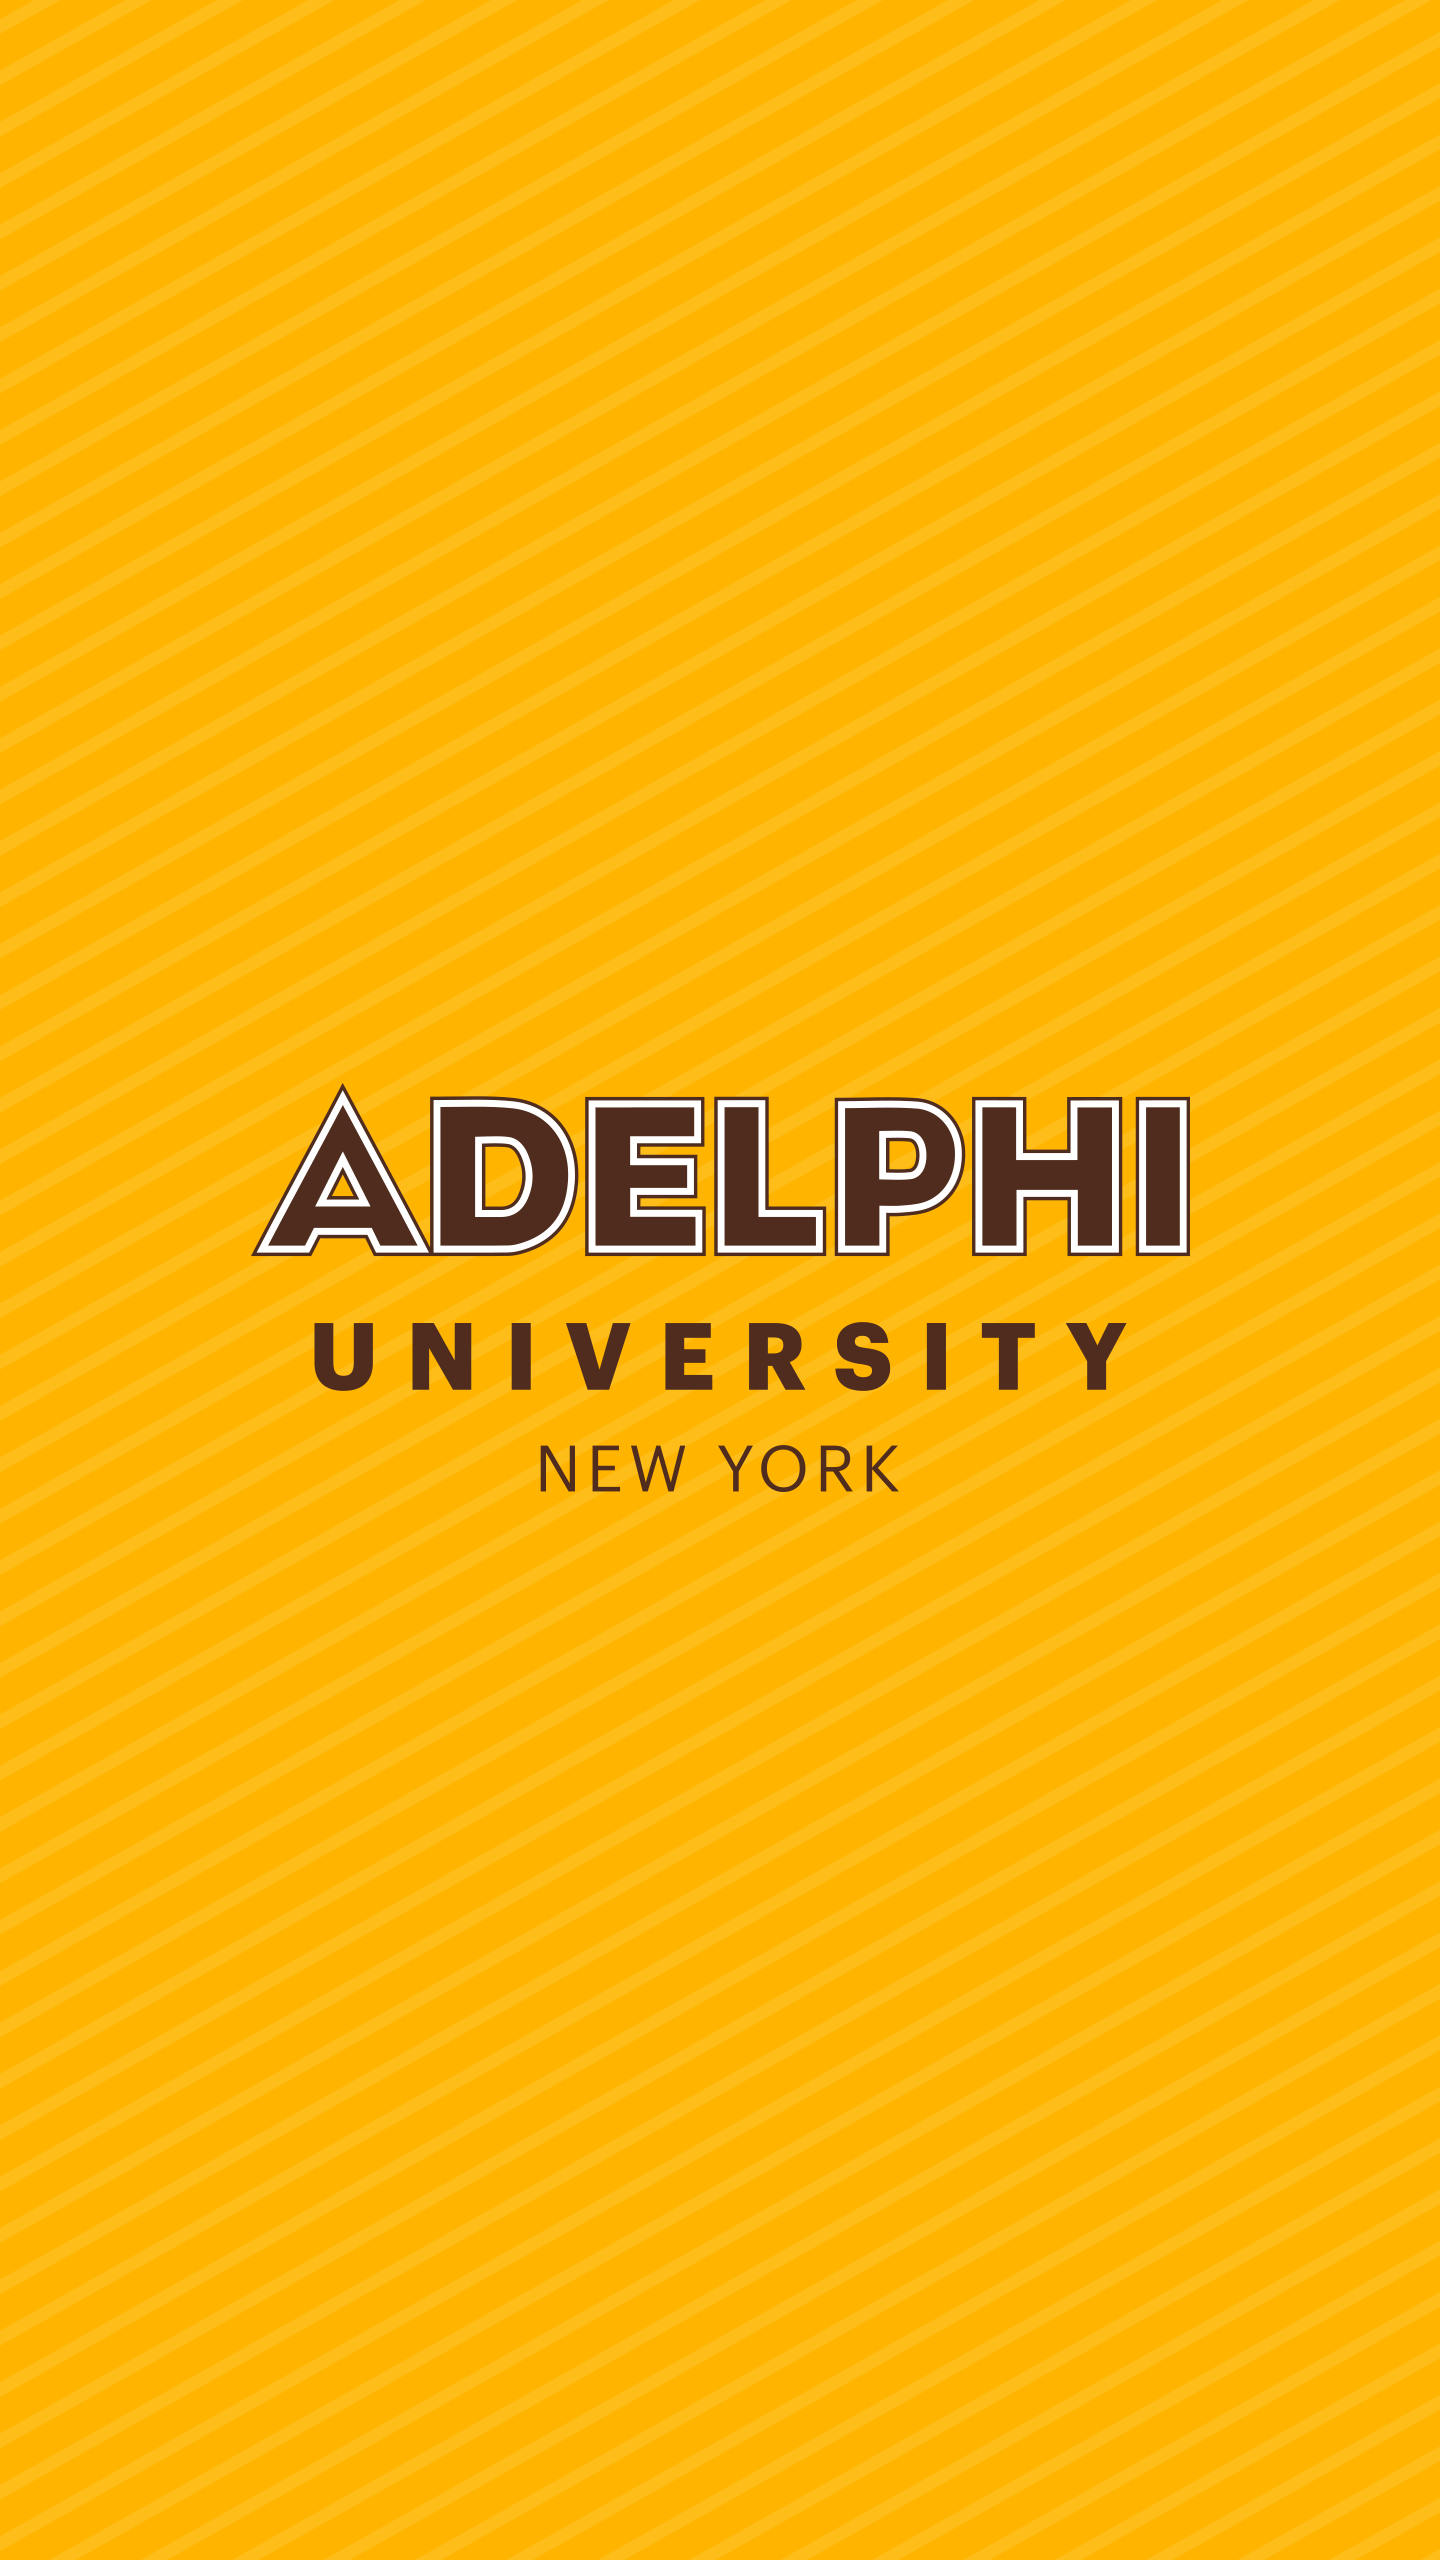 Smartphone - Adelphi Gold Wallpaper